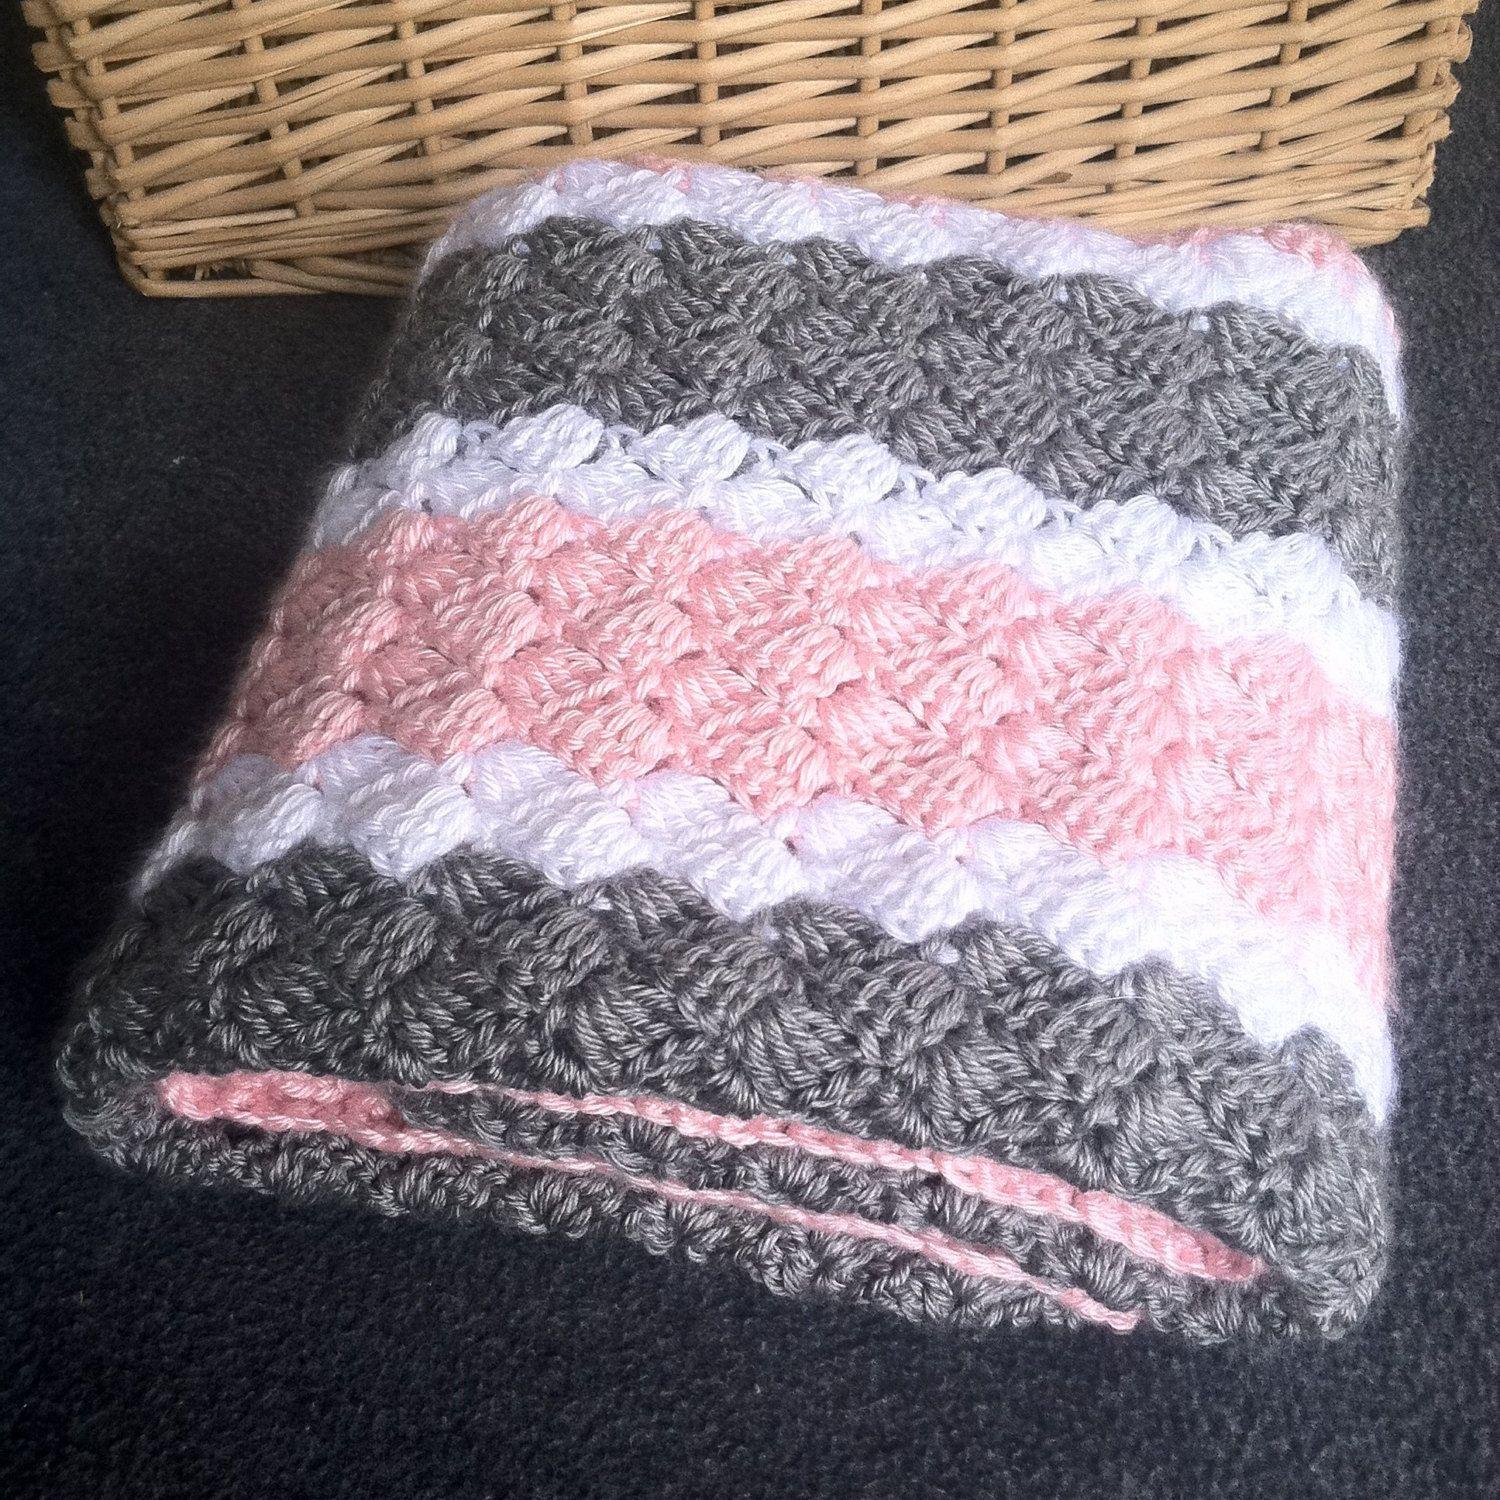 Baby Girl Blanket Knitting Patterns Crochet Girl Ba Blanket Hand Made Pink Grey And White Knitted Empoto